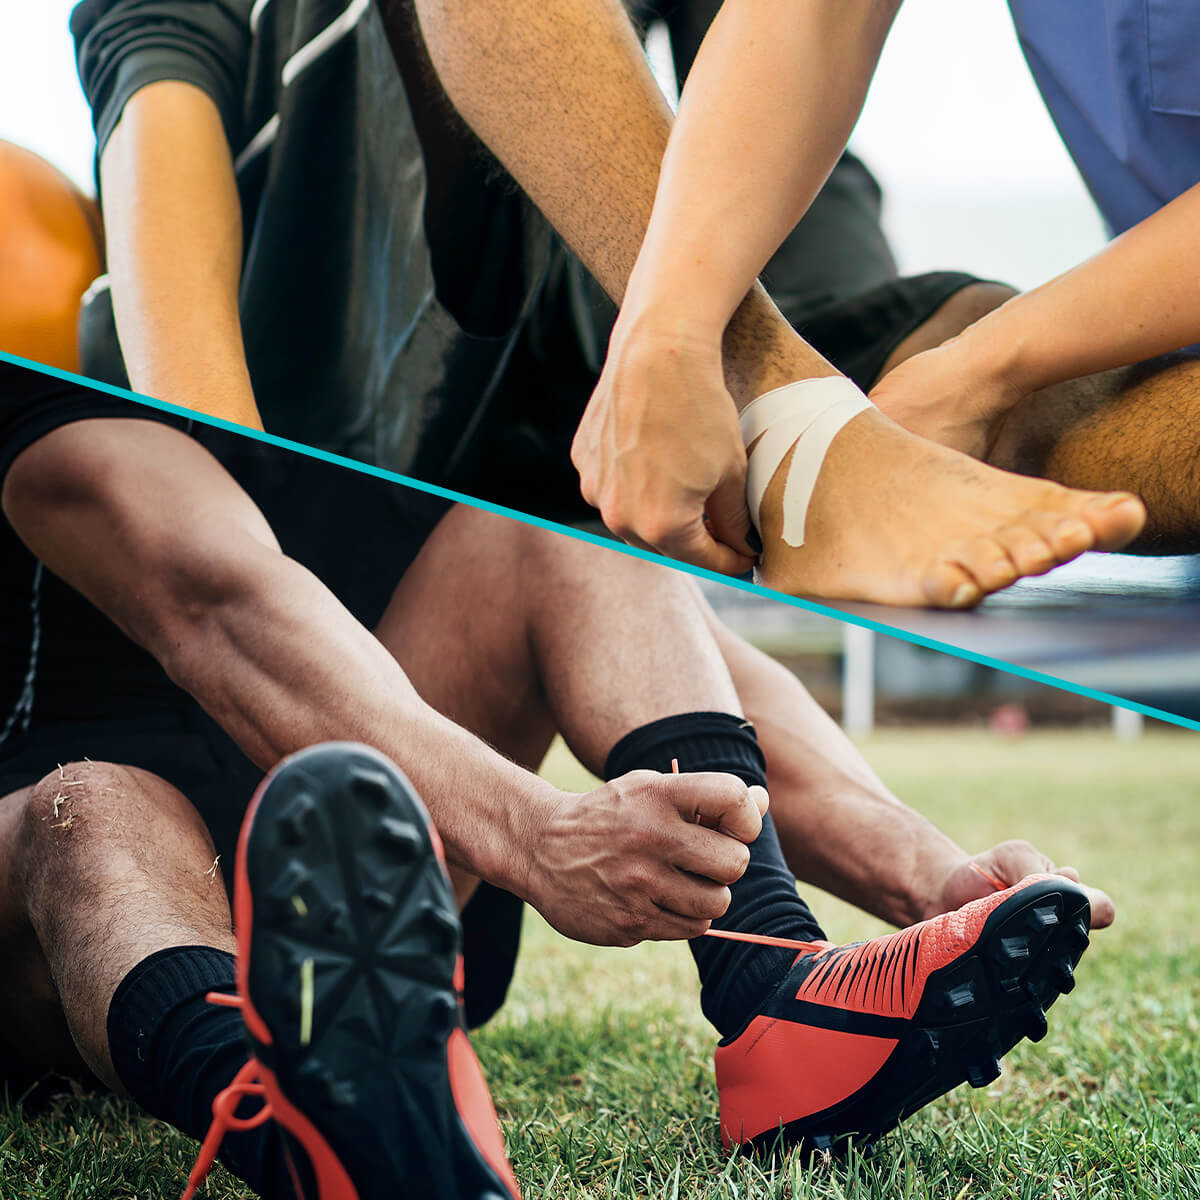 Split-screen image showing an athlete lacing up cleats on the left and a sports medicine physician taping an athlete's ankle after a sports injury.